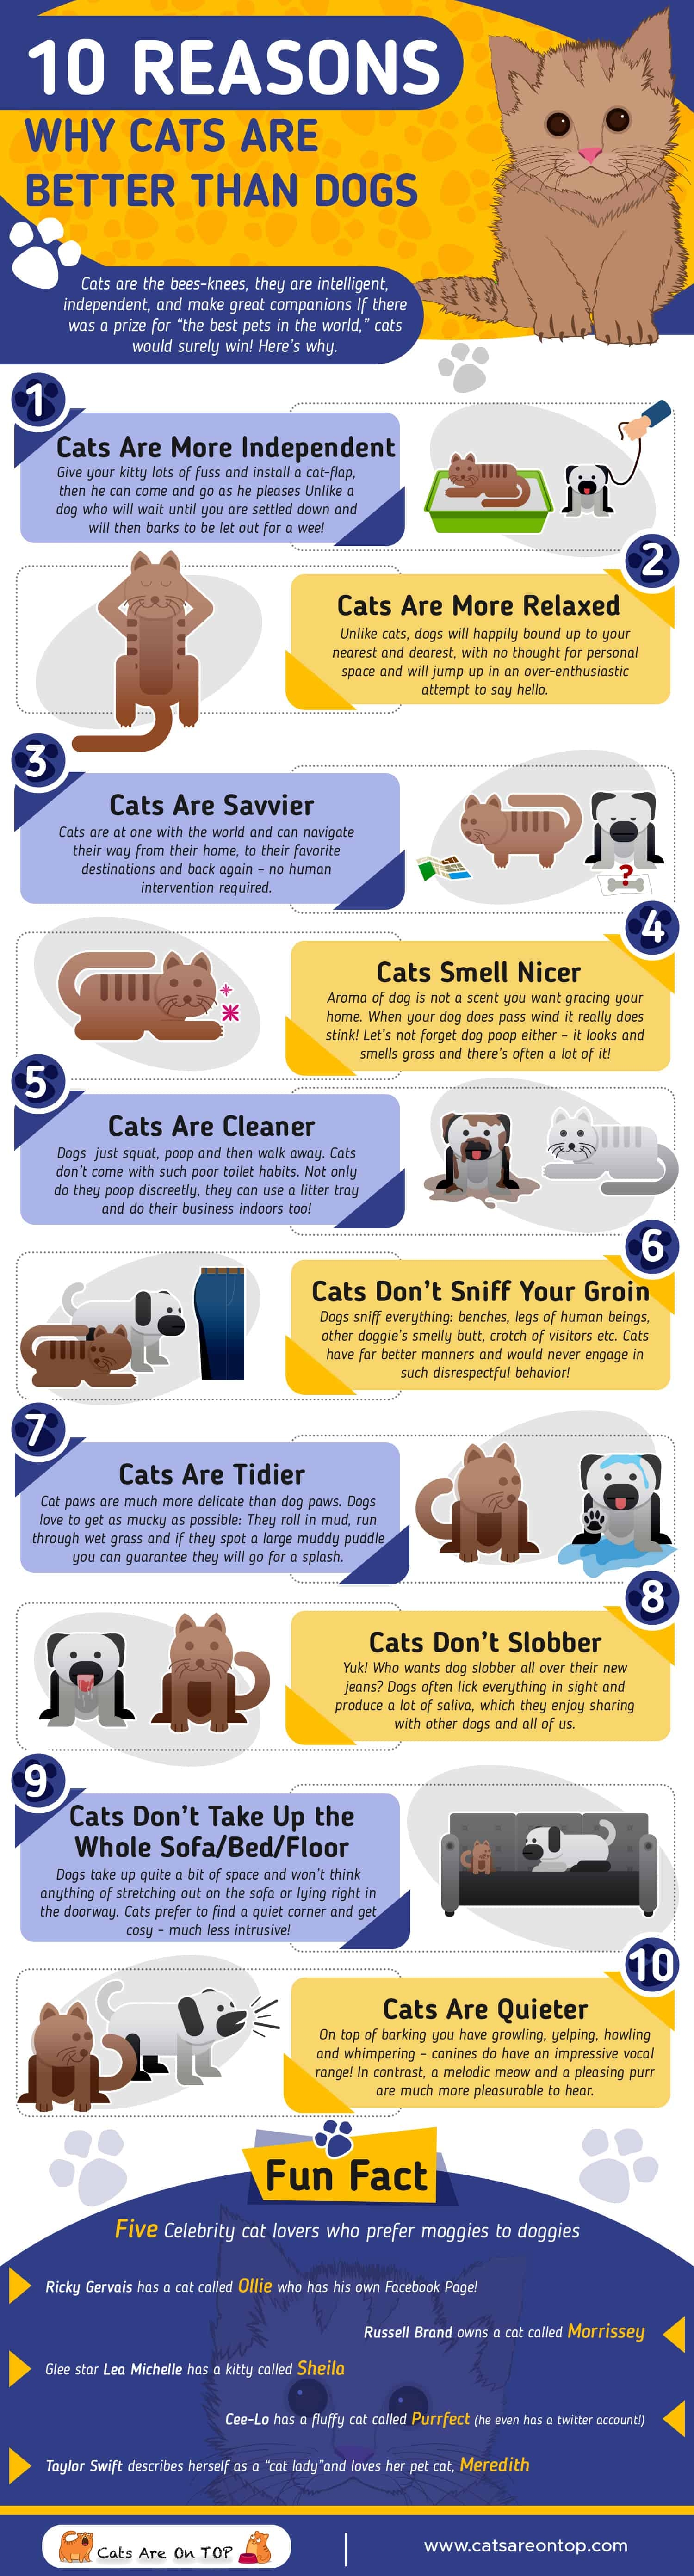 facts about why dogs are better than cats